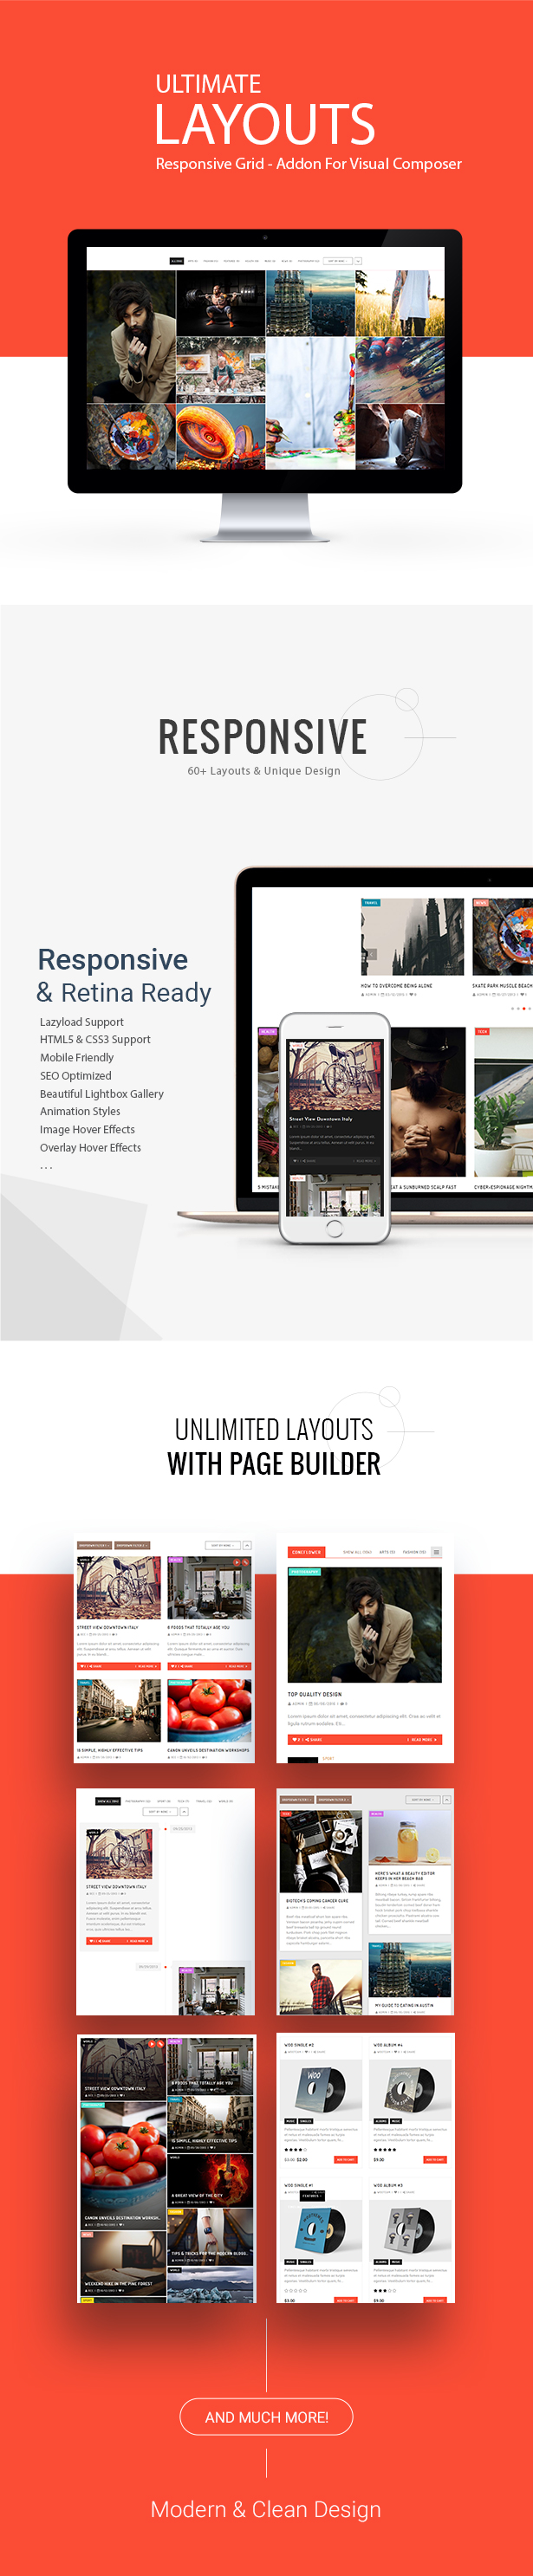 ultimate - Ultimate Layouts - Responsive Grid & Youtube Video Gallery - Addon For Visual Composer